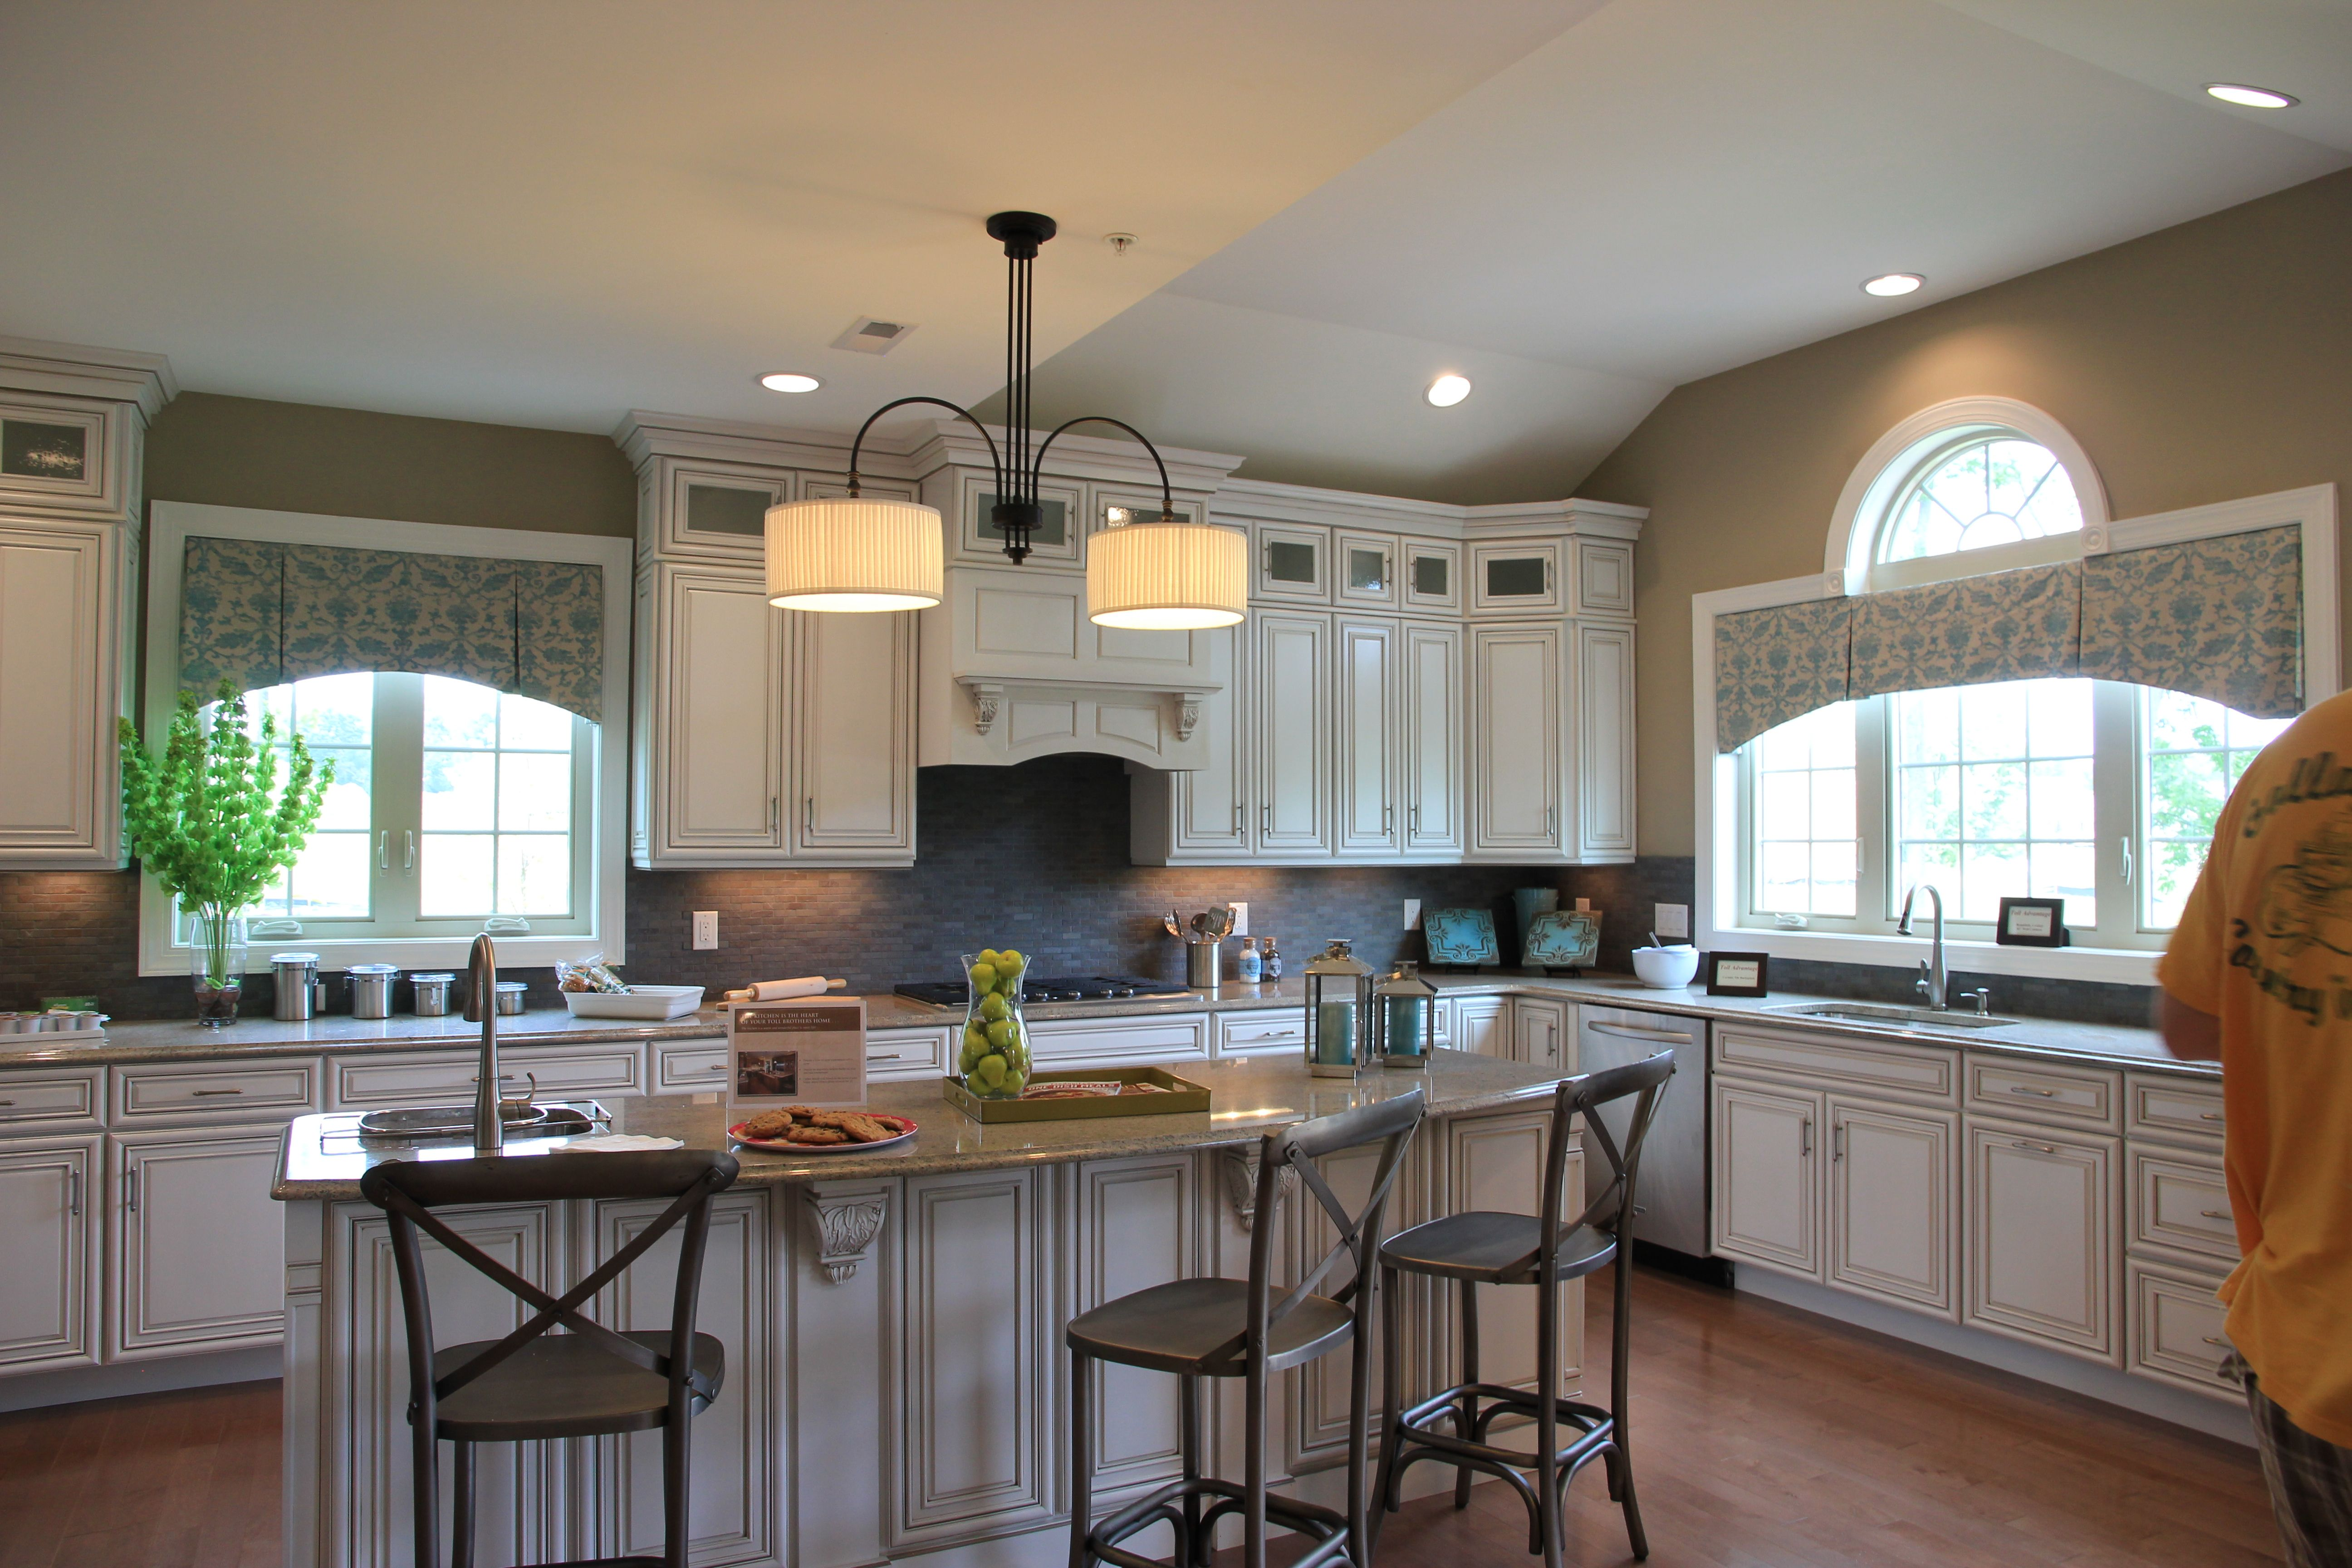 Window Treatment Idea For Palladian Kitchen From Toll Brothers Model Home